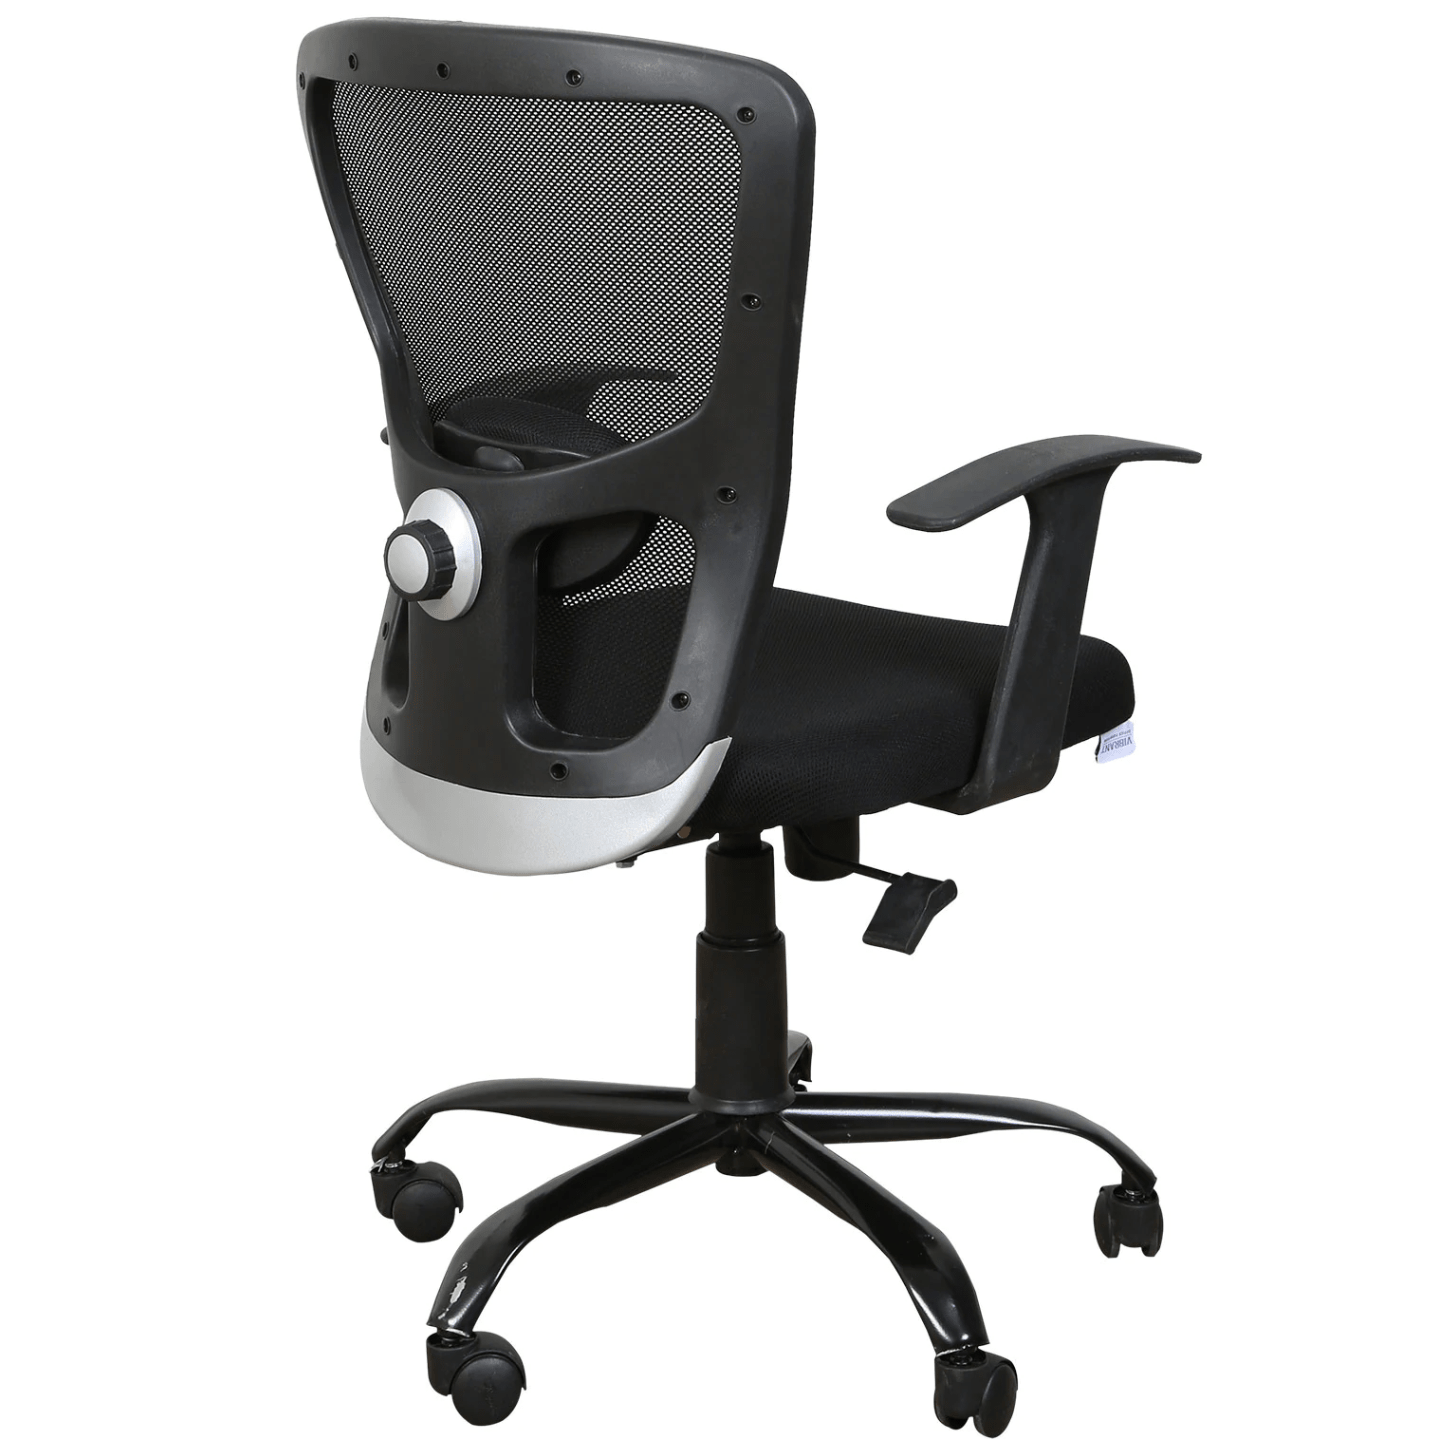 Home Office Chair Model - AMU MB